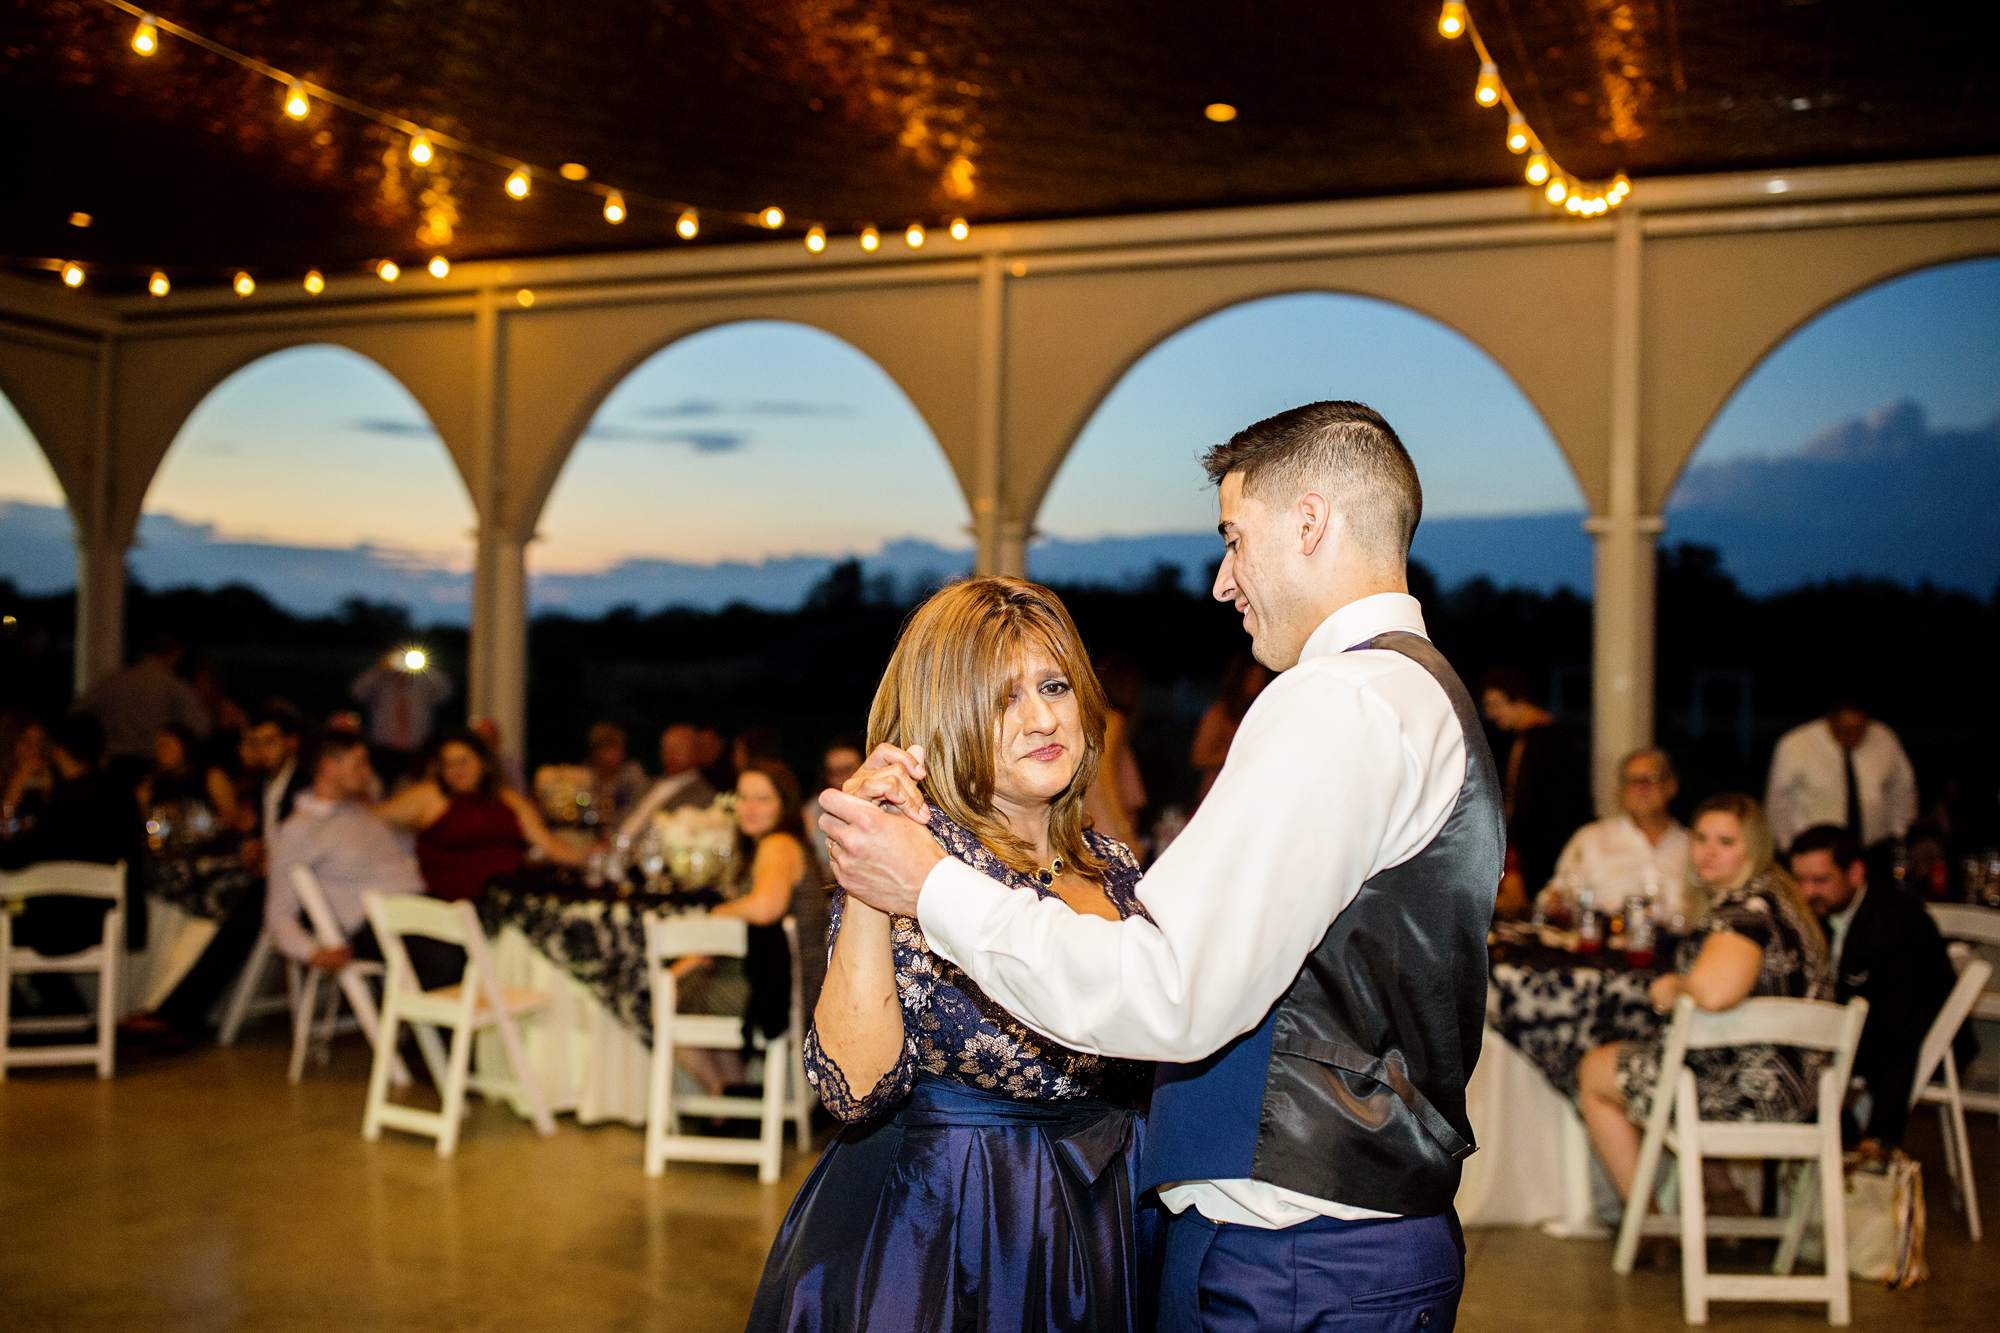 Seriously_Sabrina_Photography_Dayton_Ohio_Great_Gatsby_Wedding_Cedar_Springs_Pavillion_Harper_121.jpg